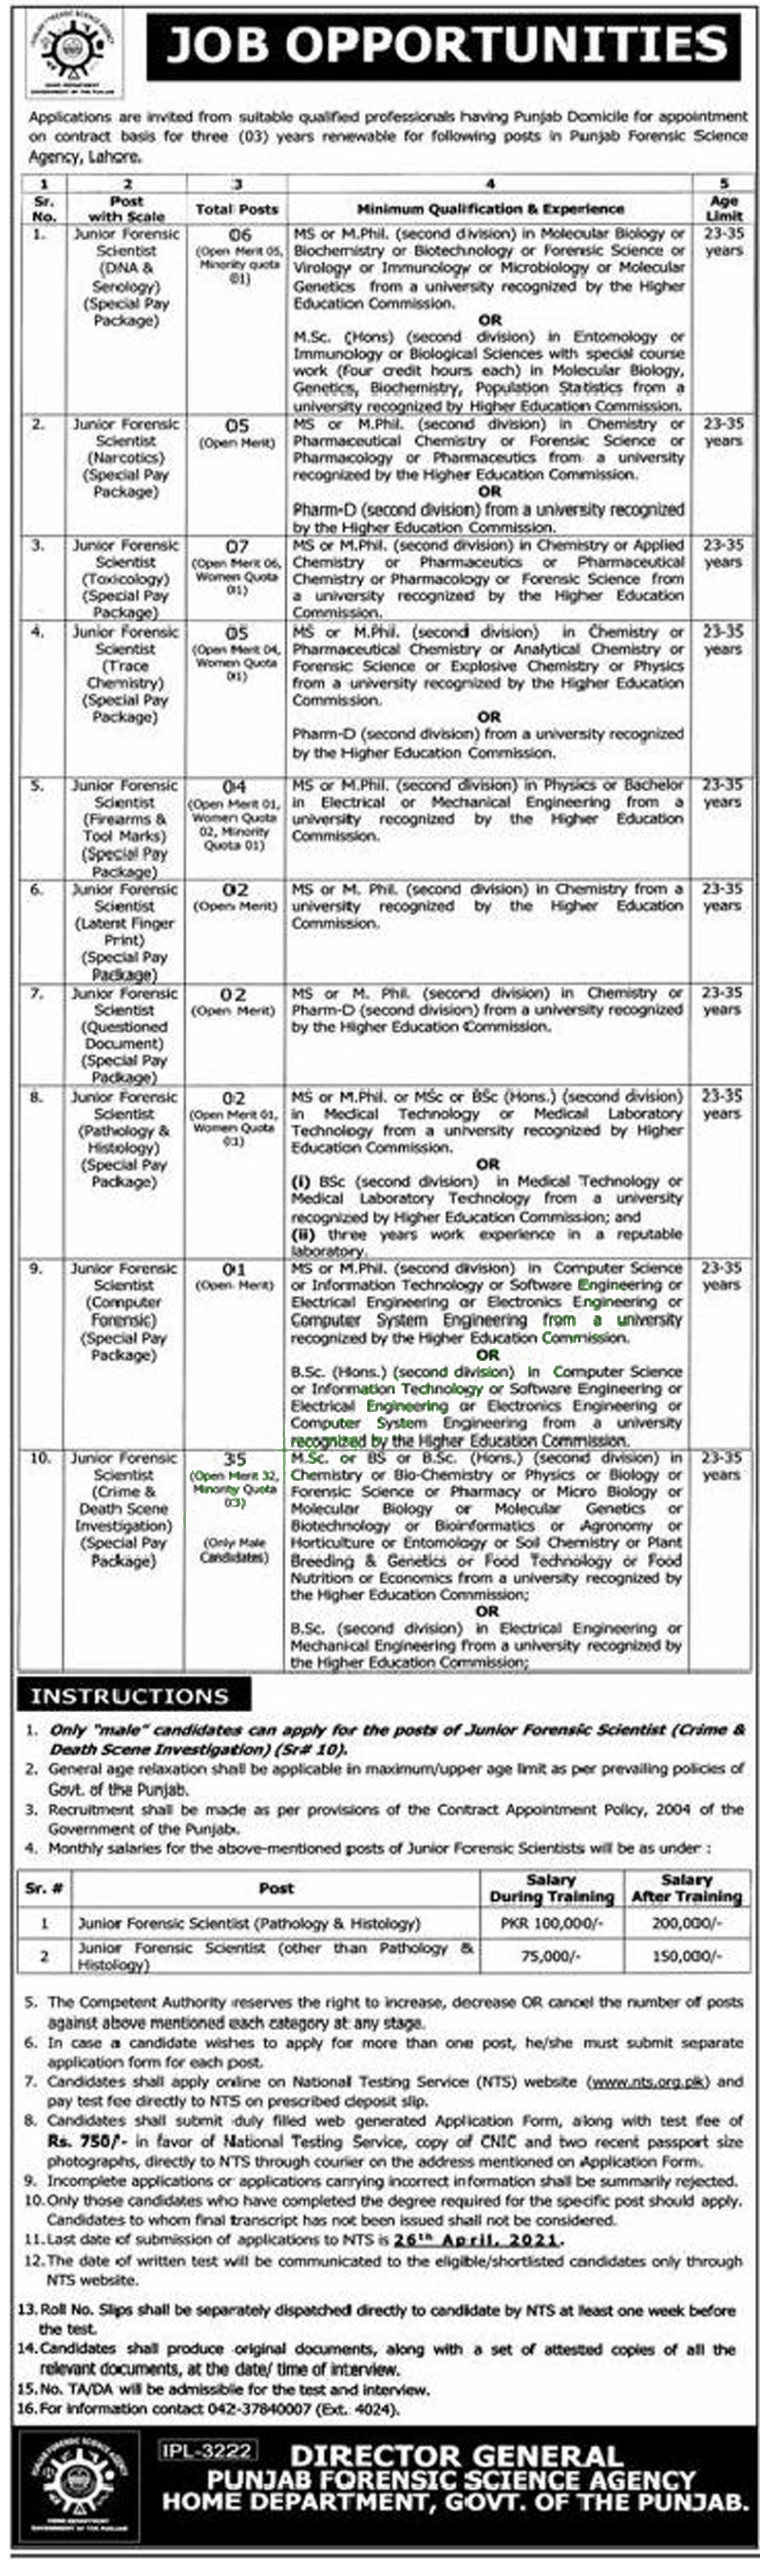 Punjab Forensic Science Agency Jobs Advertisement 2021 in - Apply Online NTS Testing Service